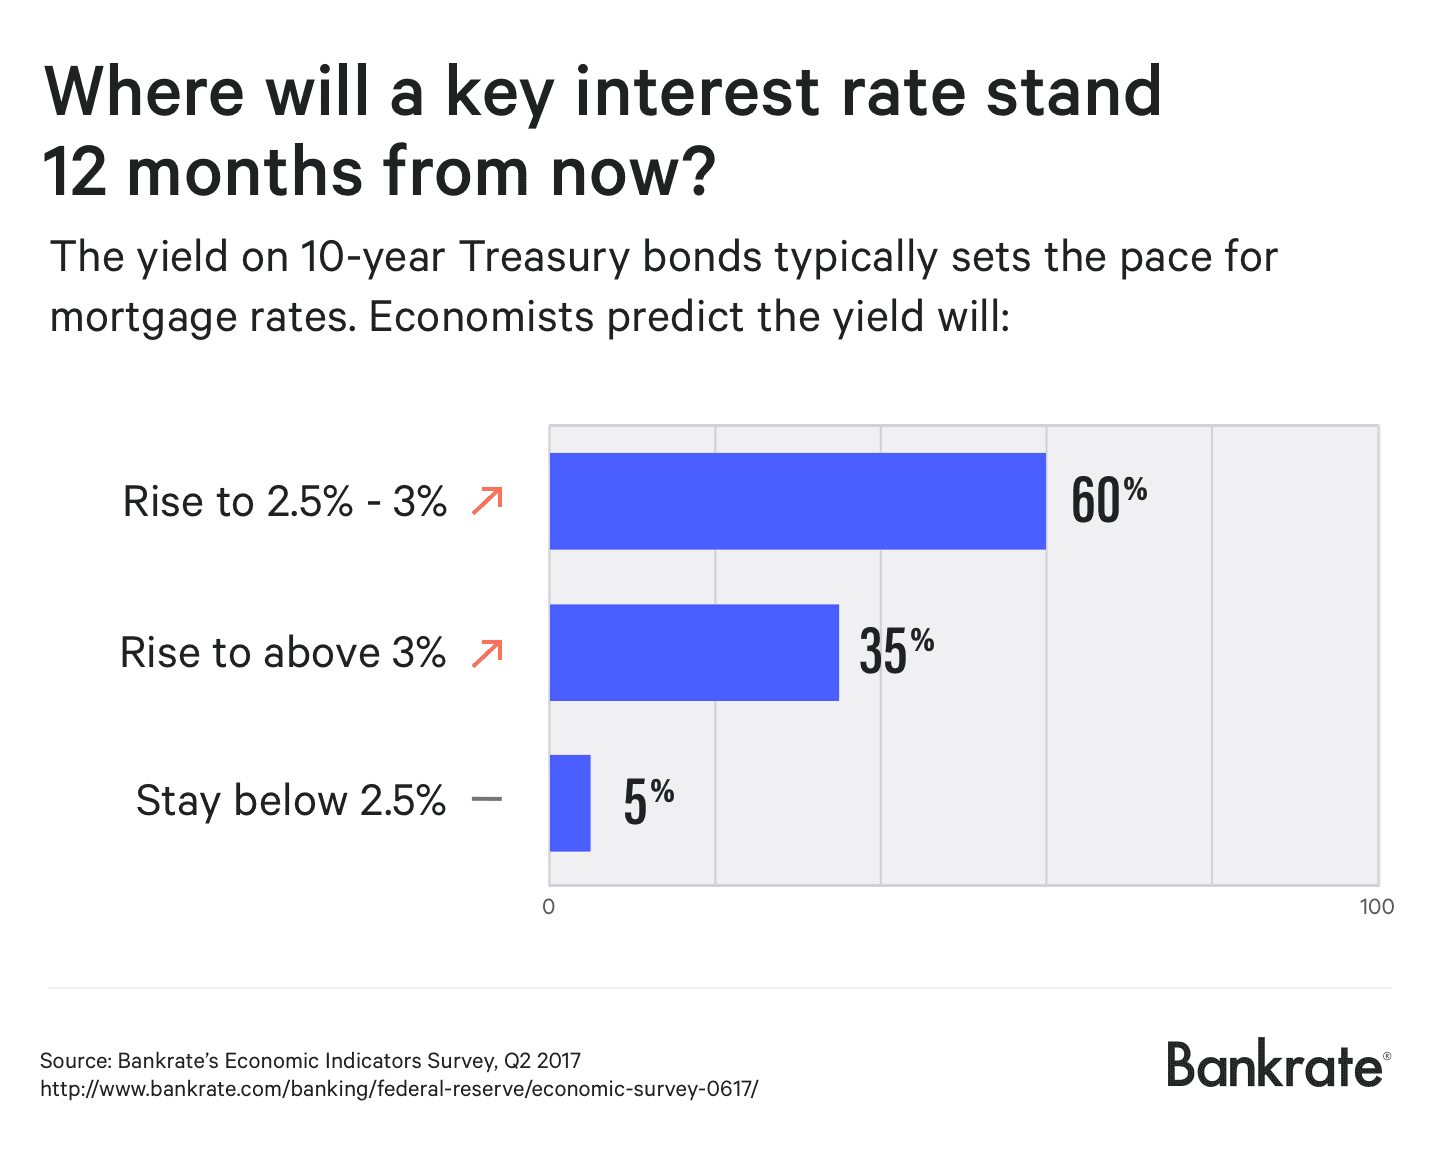 Where will a key interest rate stand 12 months from now?